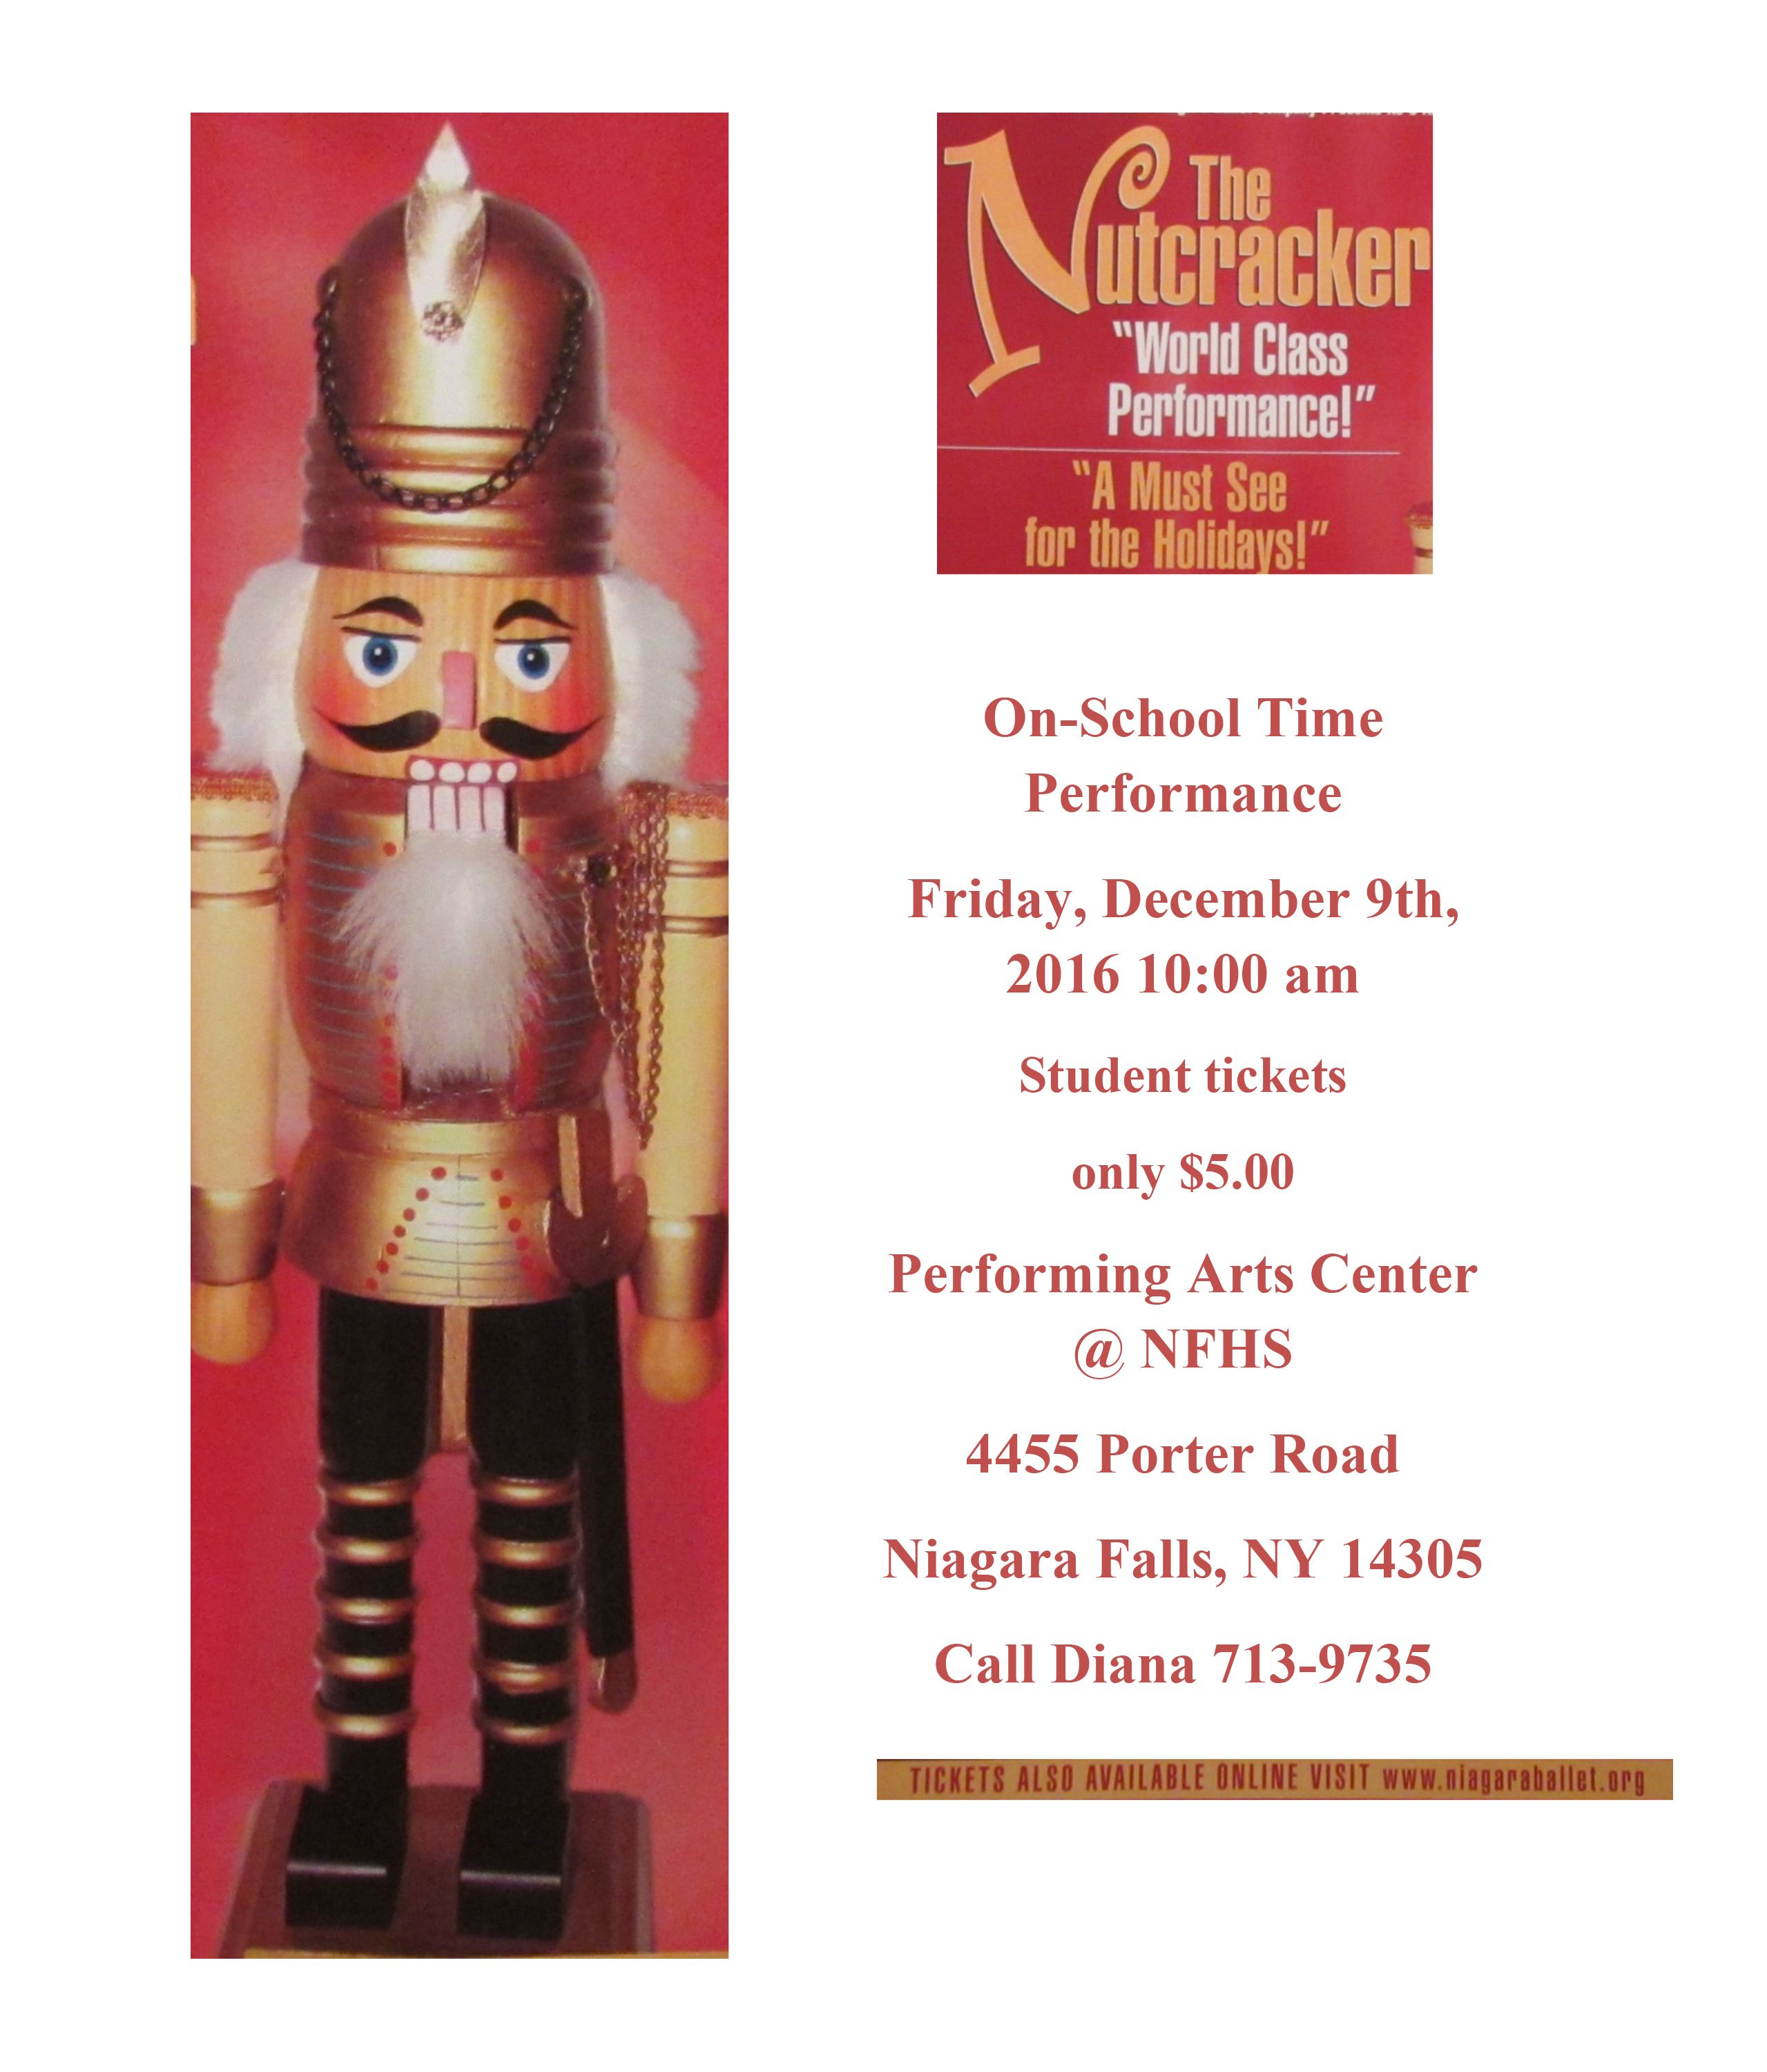 Microsoft Word - 2016 Nutcracker On-School Time Flyer.docx